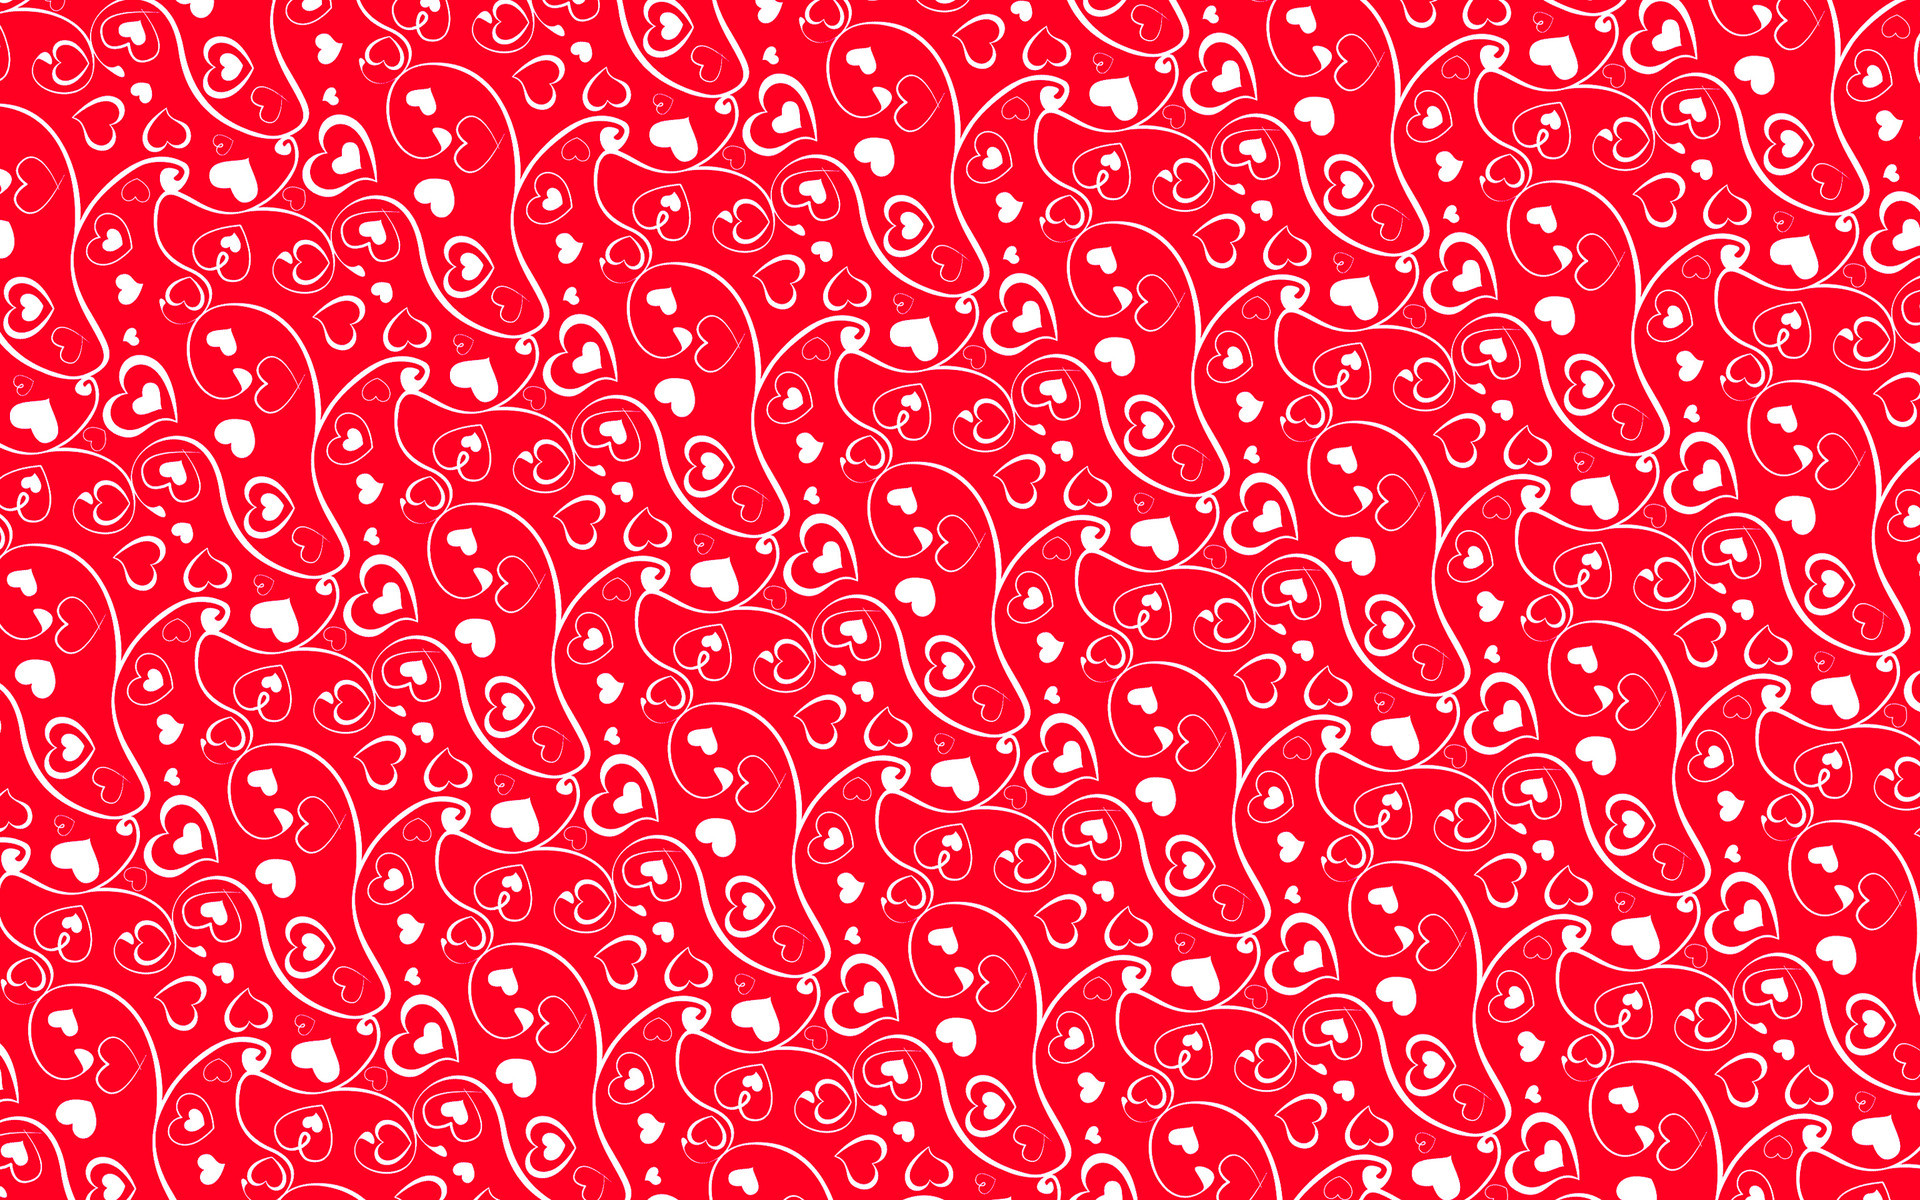 Red Heart Patterns Unique Red Heart and Swirl Patterns Free Ppt Backgrounds for Your Of Contemporary 46 Ideas Red Heart Patterns